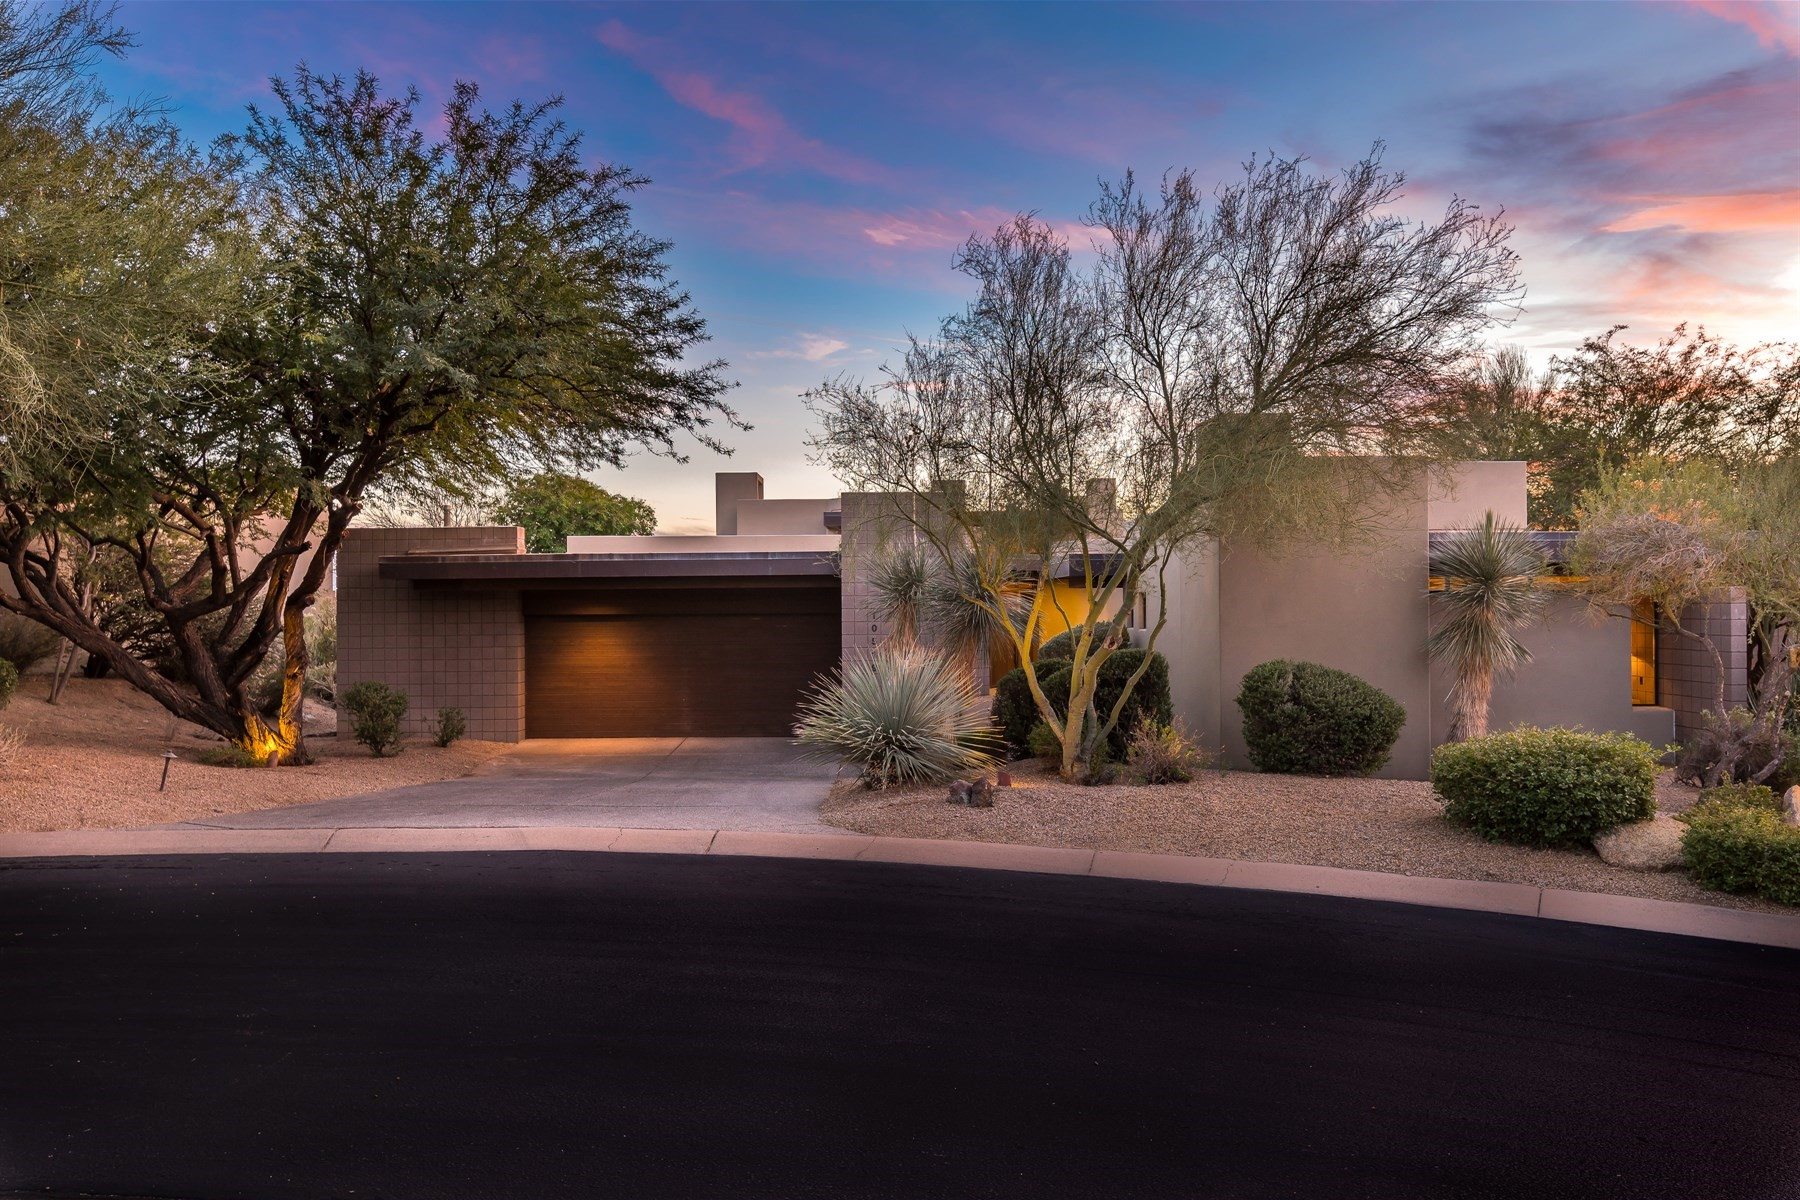 Single Family Home for Sale at Scottsdale home on the 5th fairway of the Apache Golf Course 10519 E Fernwood Ln, Scottsdale, Arizona, 85262 United States